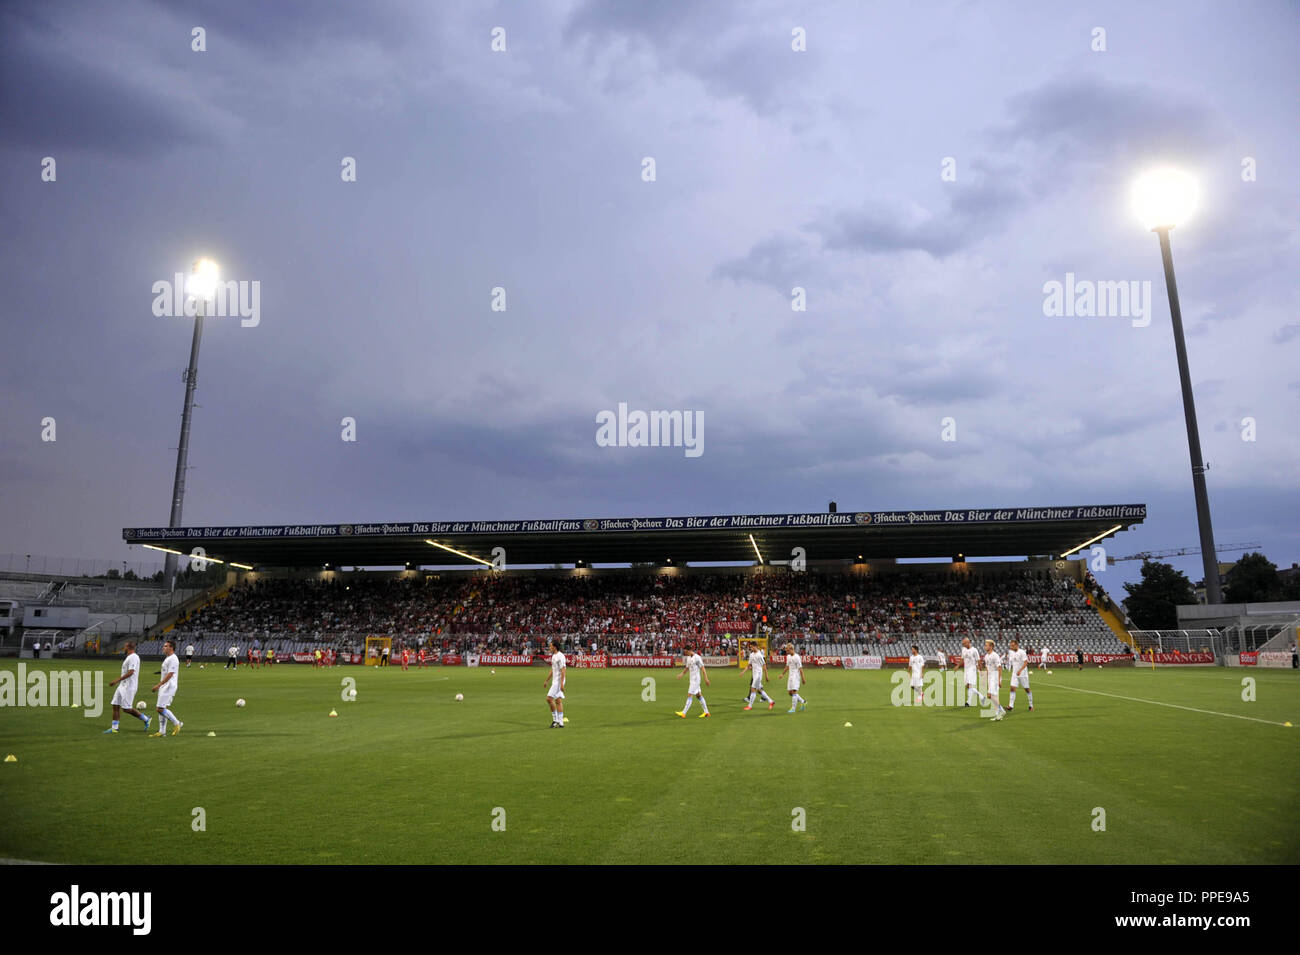 Regionalliga Sued derby: FC Bayern Munich II (in red) - TSV 1860 Muenchen (2-0) in the Municipal Stadium in the Gruenwalder Strasse in Munich. In the picture, 1860 players when warming up before the match. - Stock Image